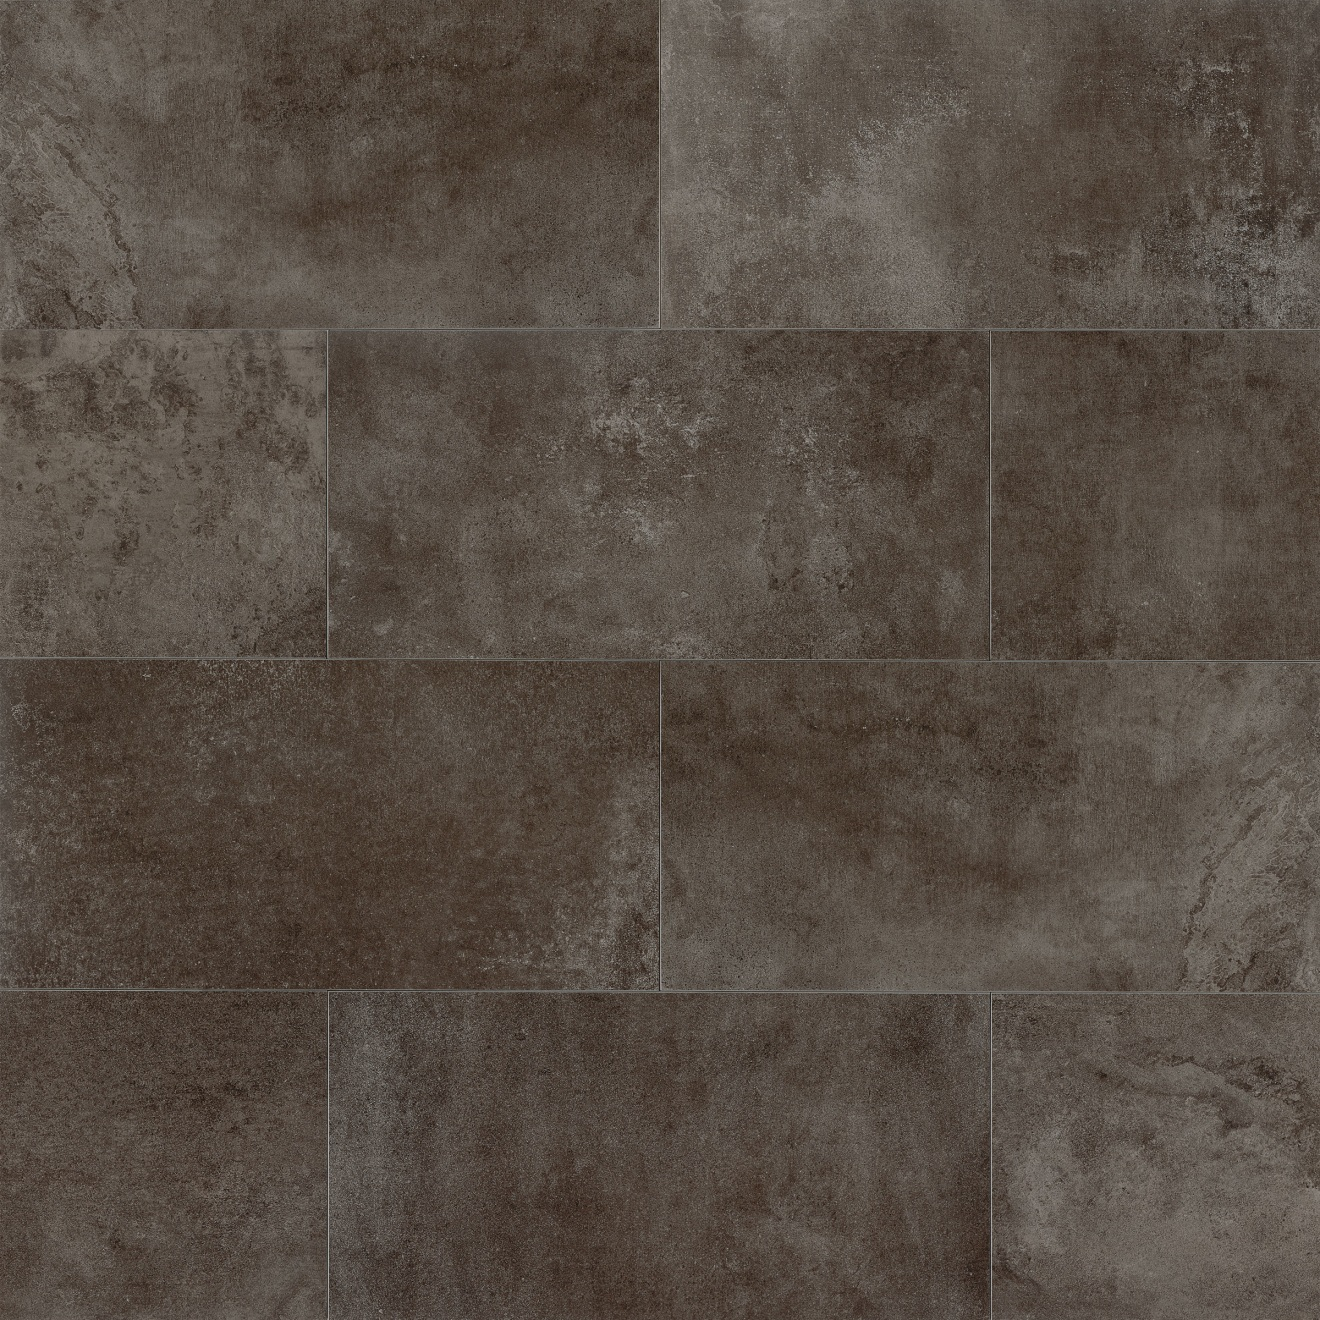 Officine 12 X 24 3 8 Floor And Wall Tile In Gothic OF 04